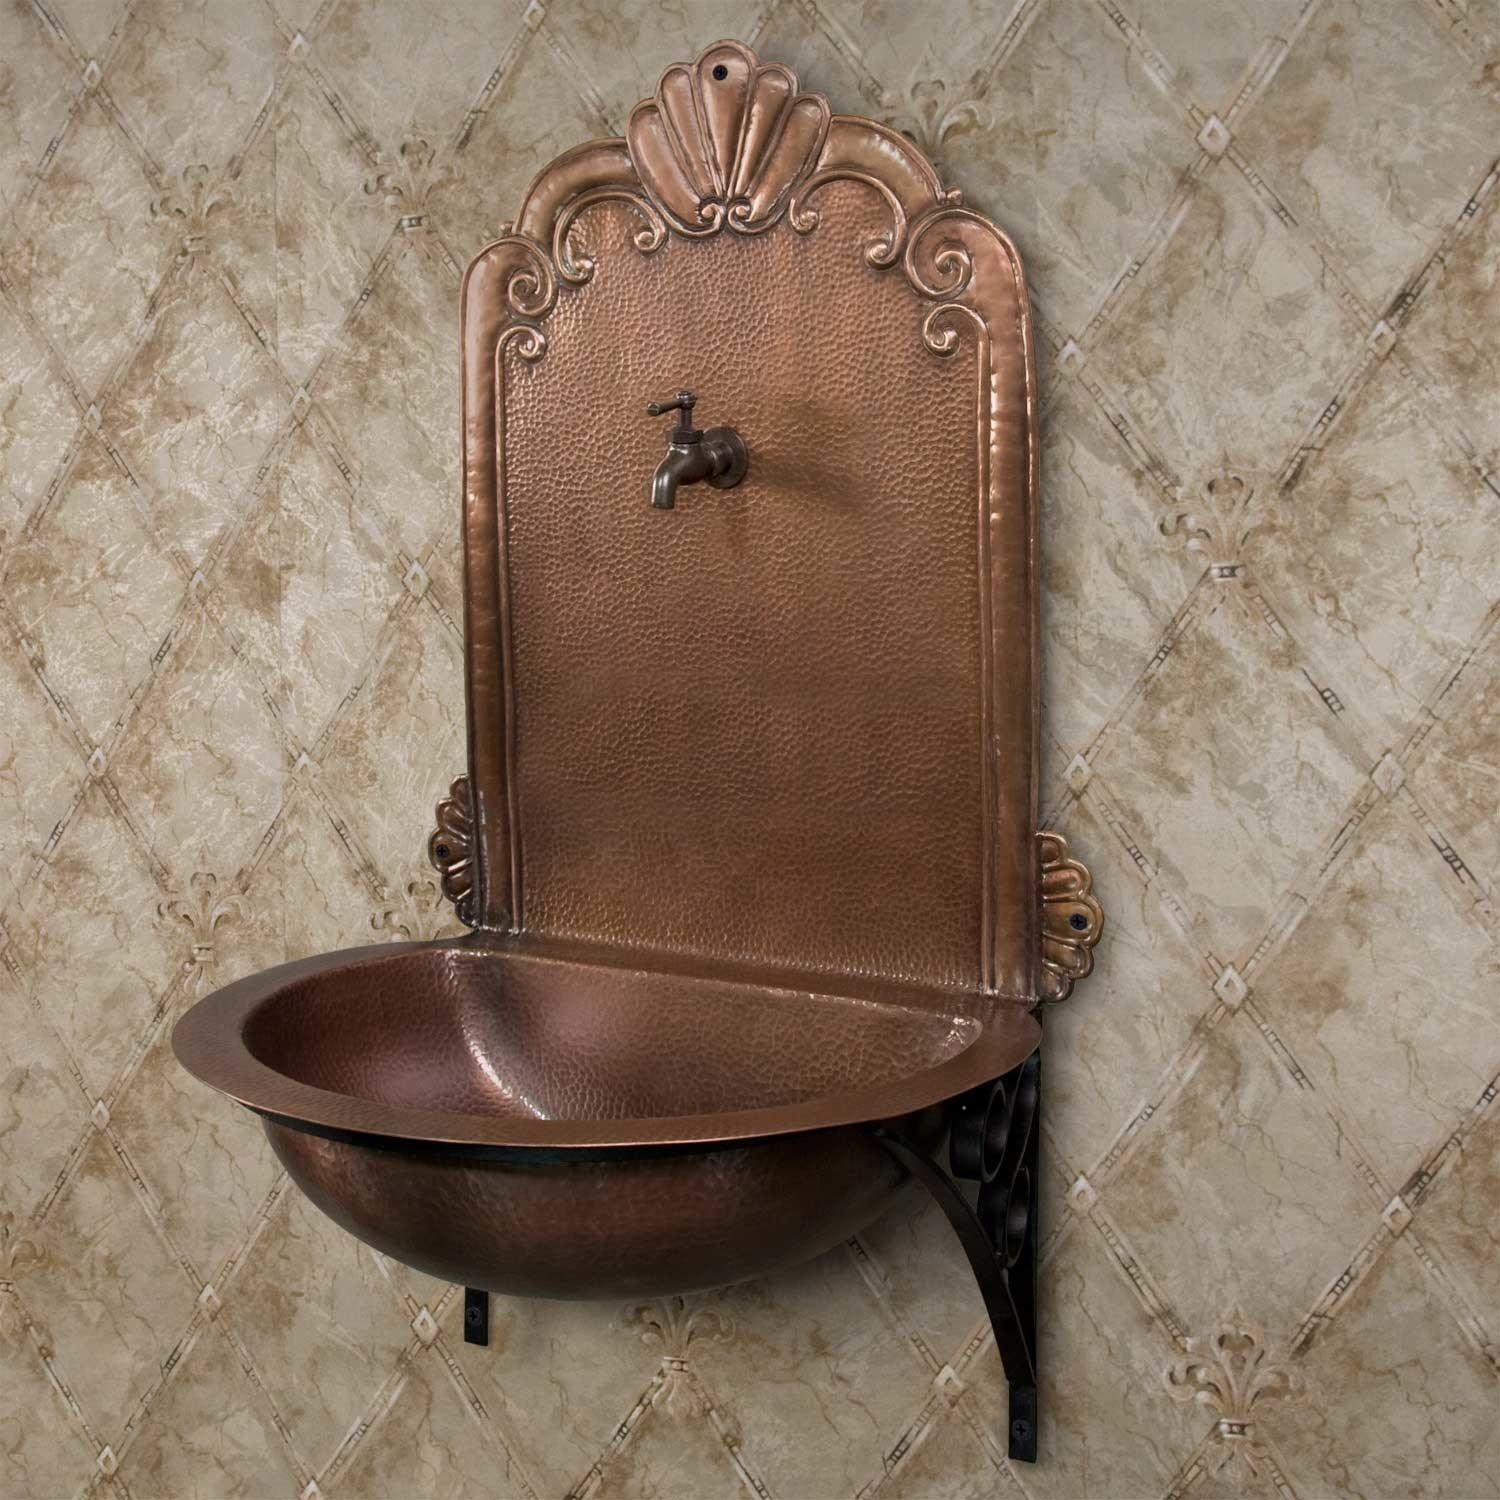 Copper Wall Mount Fountain Niche Sink With Wrought Iron Bracket